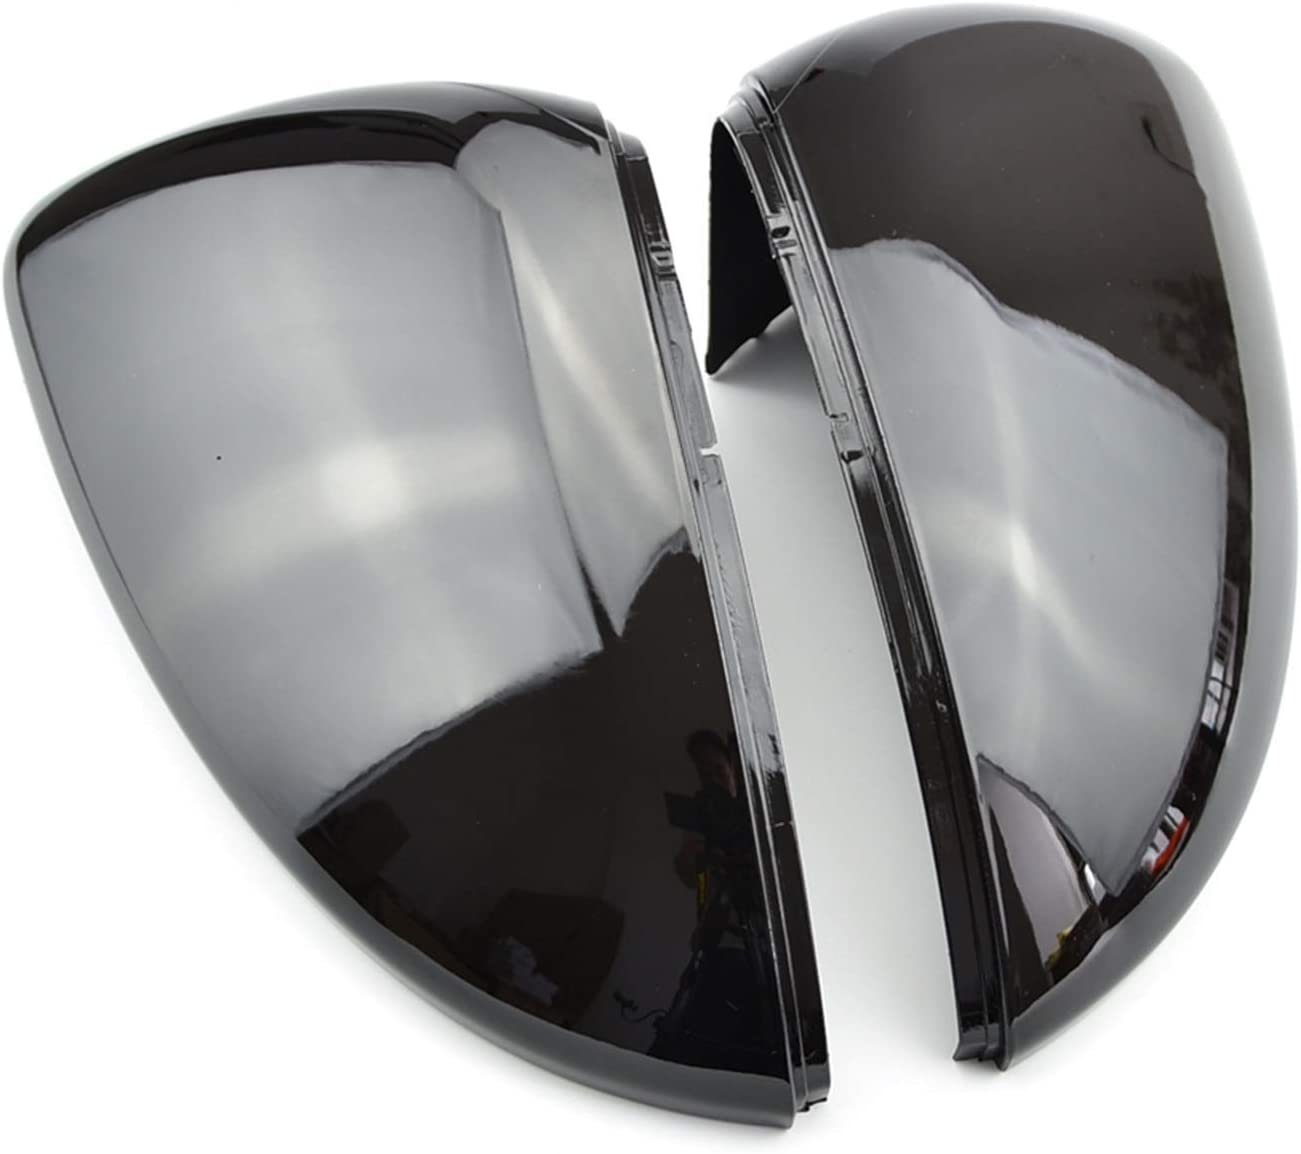 DKEKE 2 Pieces for Free Shipping Max 70% OFF New VW Golf MK7 7.5 GTI R Mirror Caps Covers 7R 7